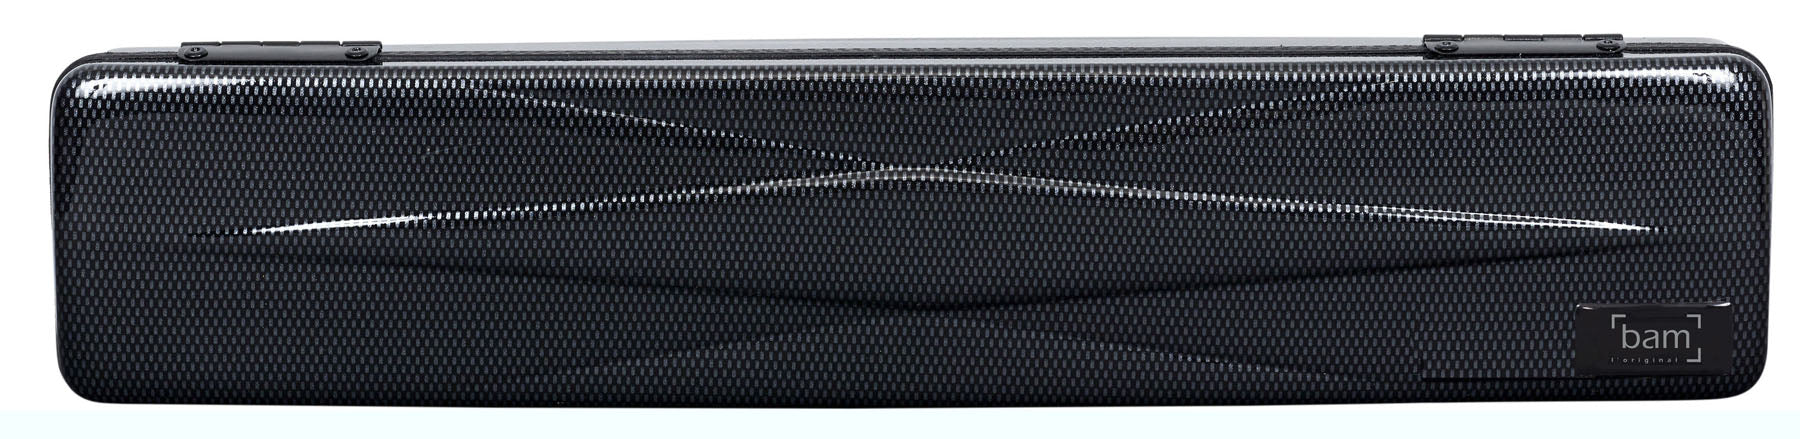 BAM HIGHTECH Slim Flute Case